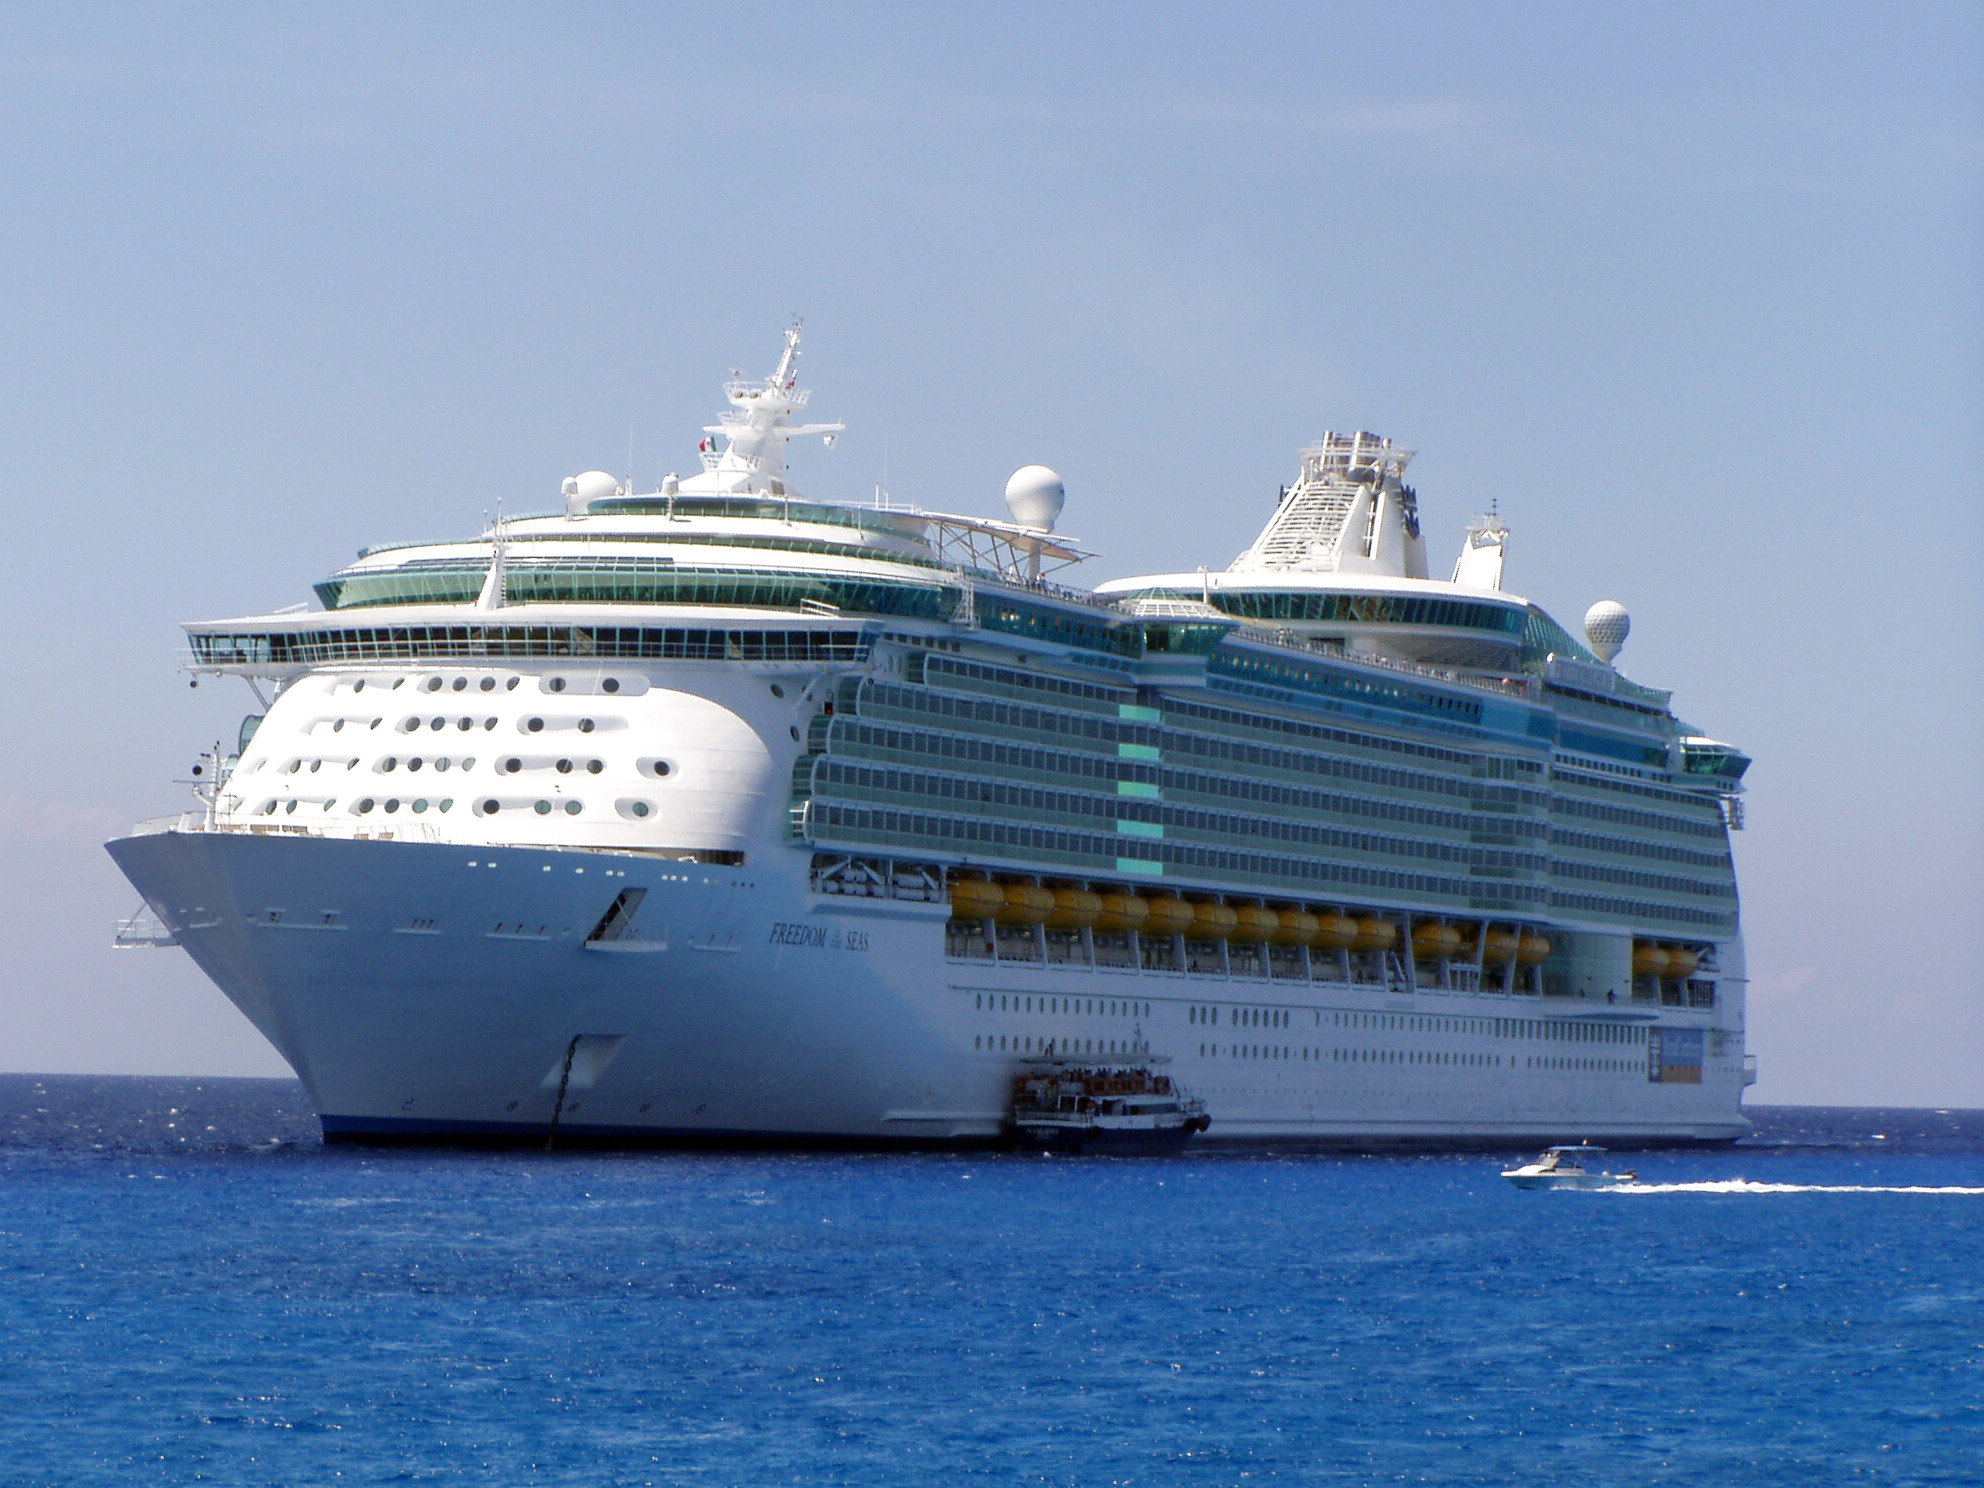 New details released after toddler falls from cruise ship and dies